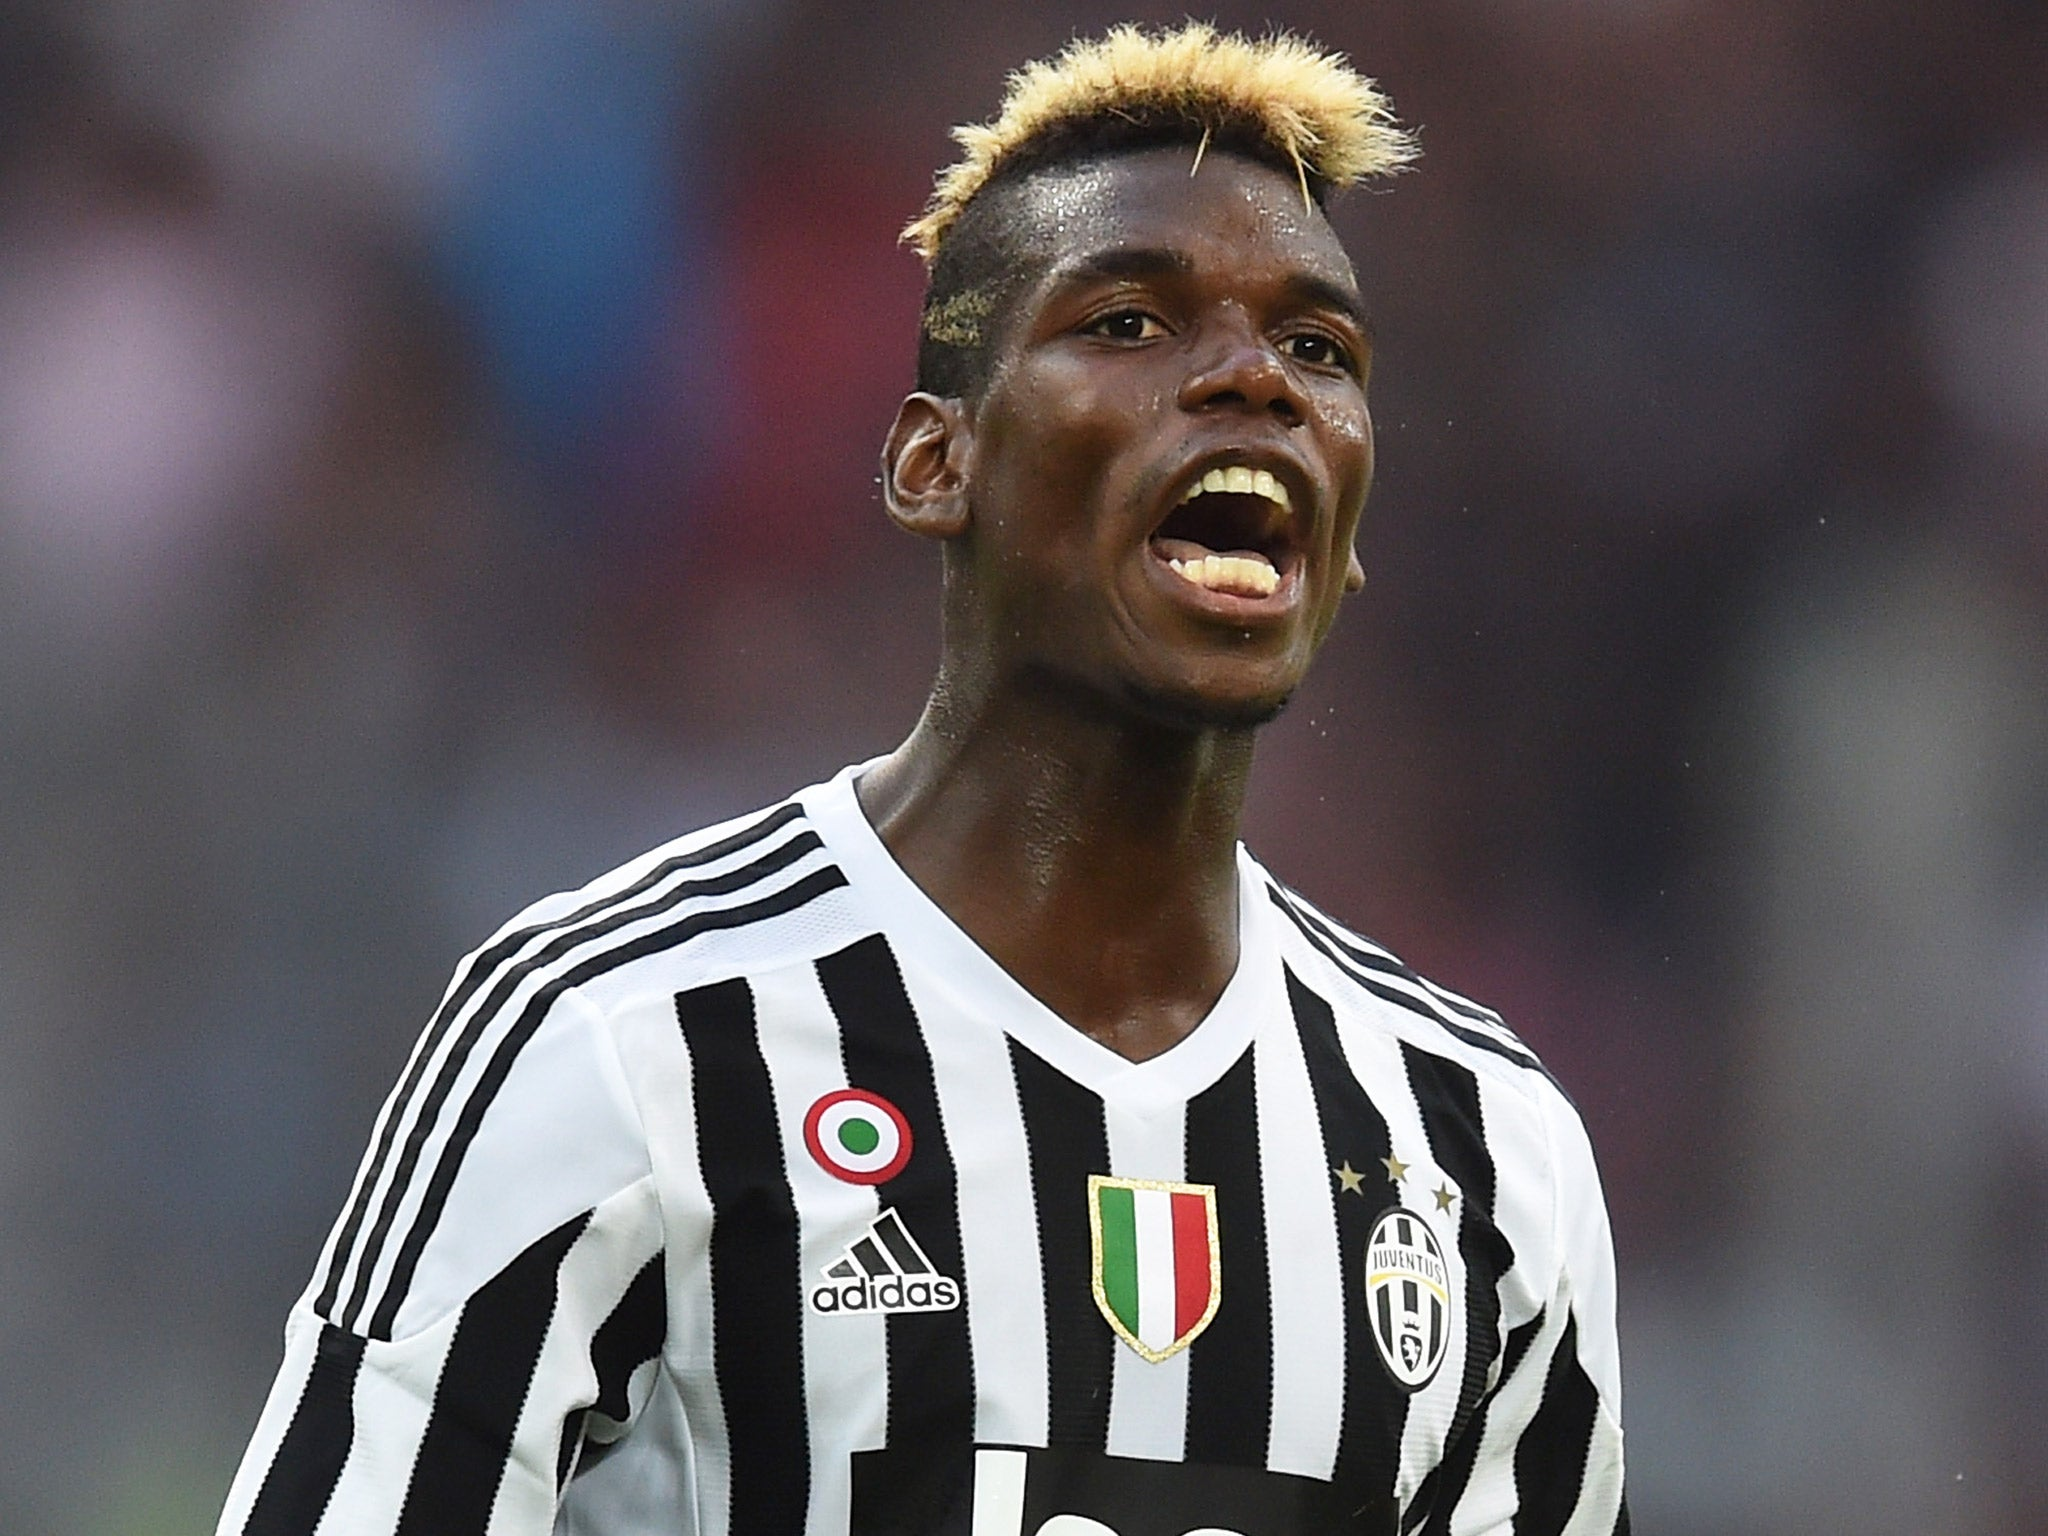 http://static.independent.co.uk/s3fs-public/thumbnails/image/2015/08/25/20/pg-64-pogba-1-getty.jpg